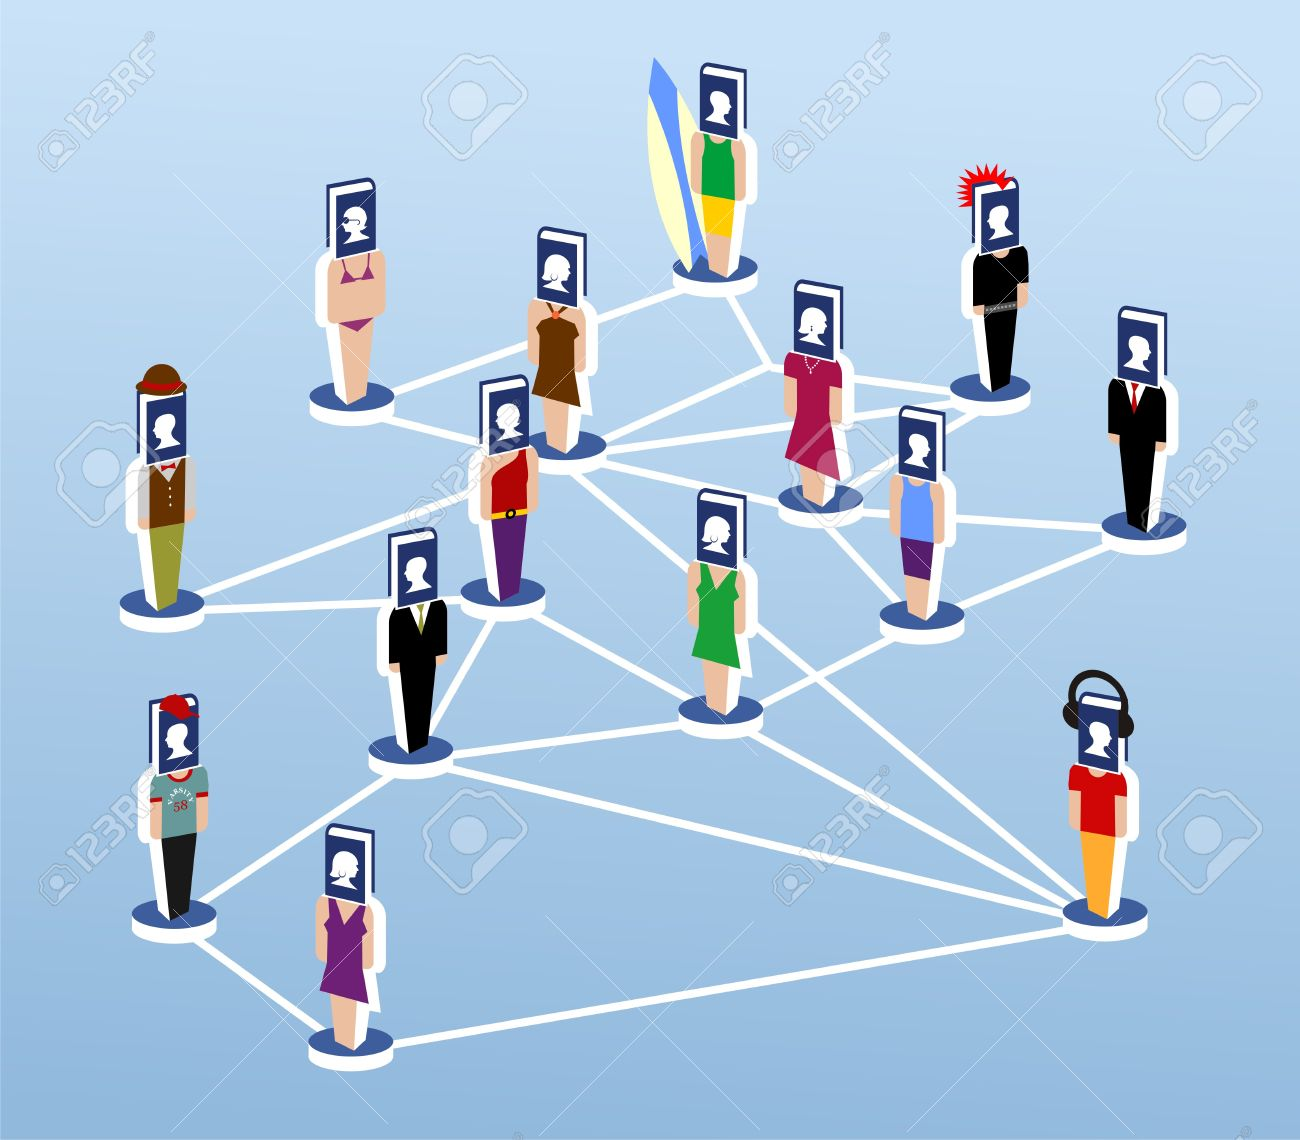 Virtual Community Communicated Through Social Networks Royalty ...